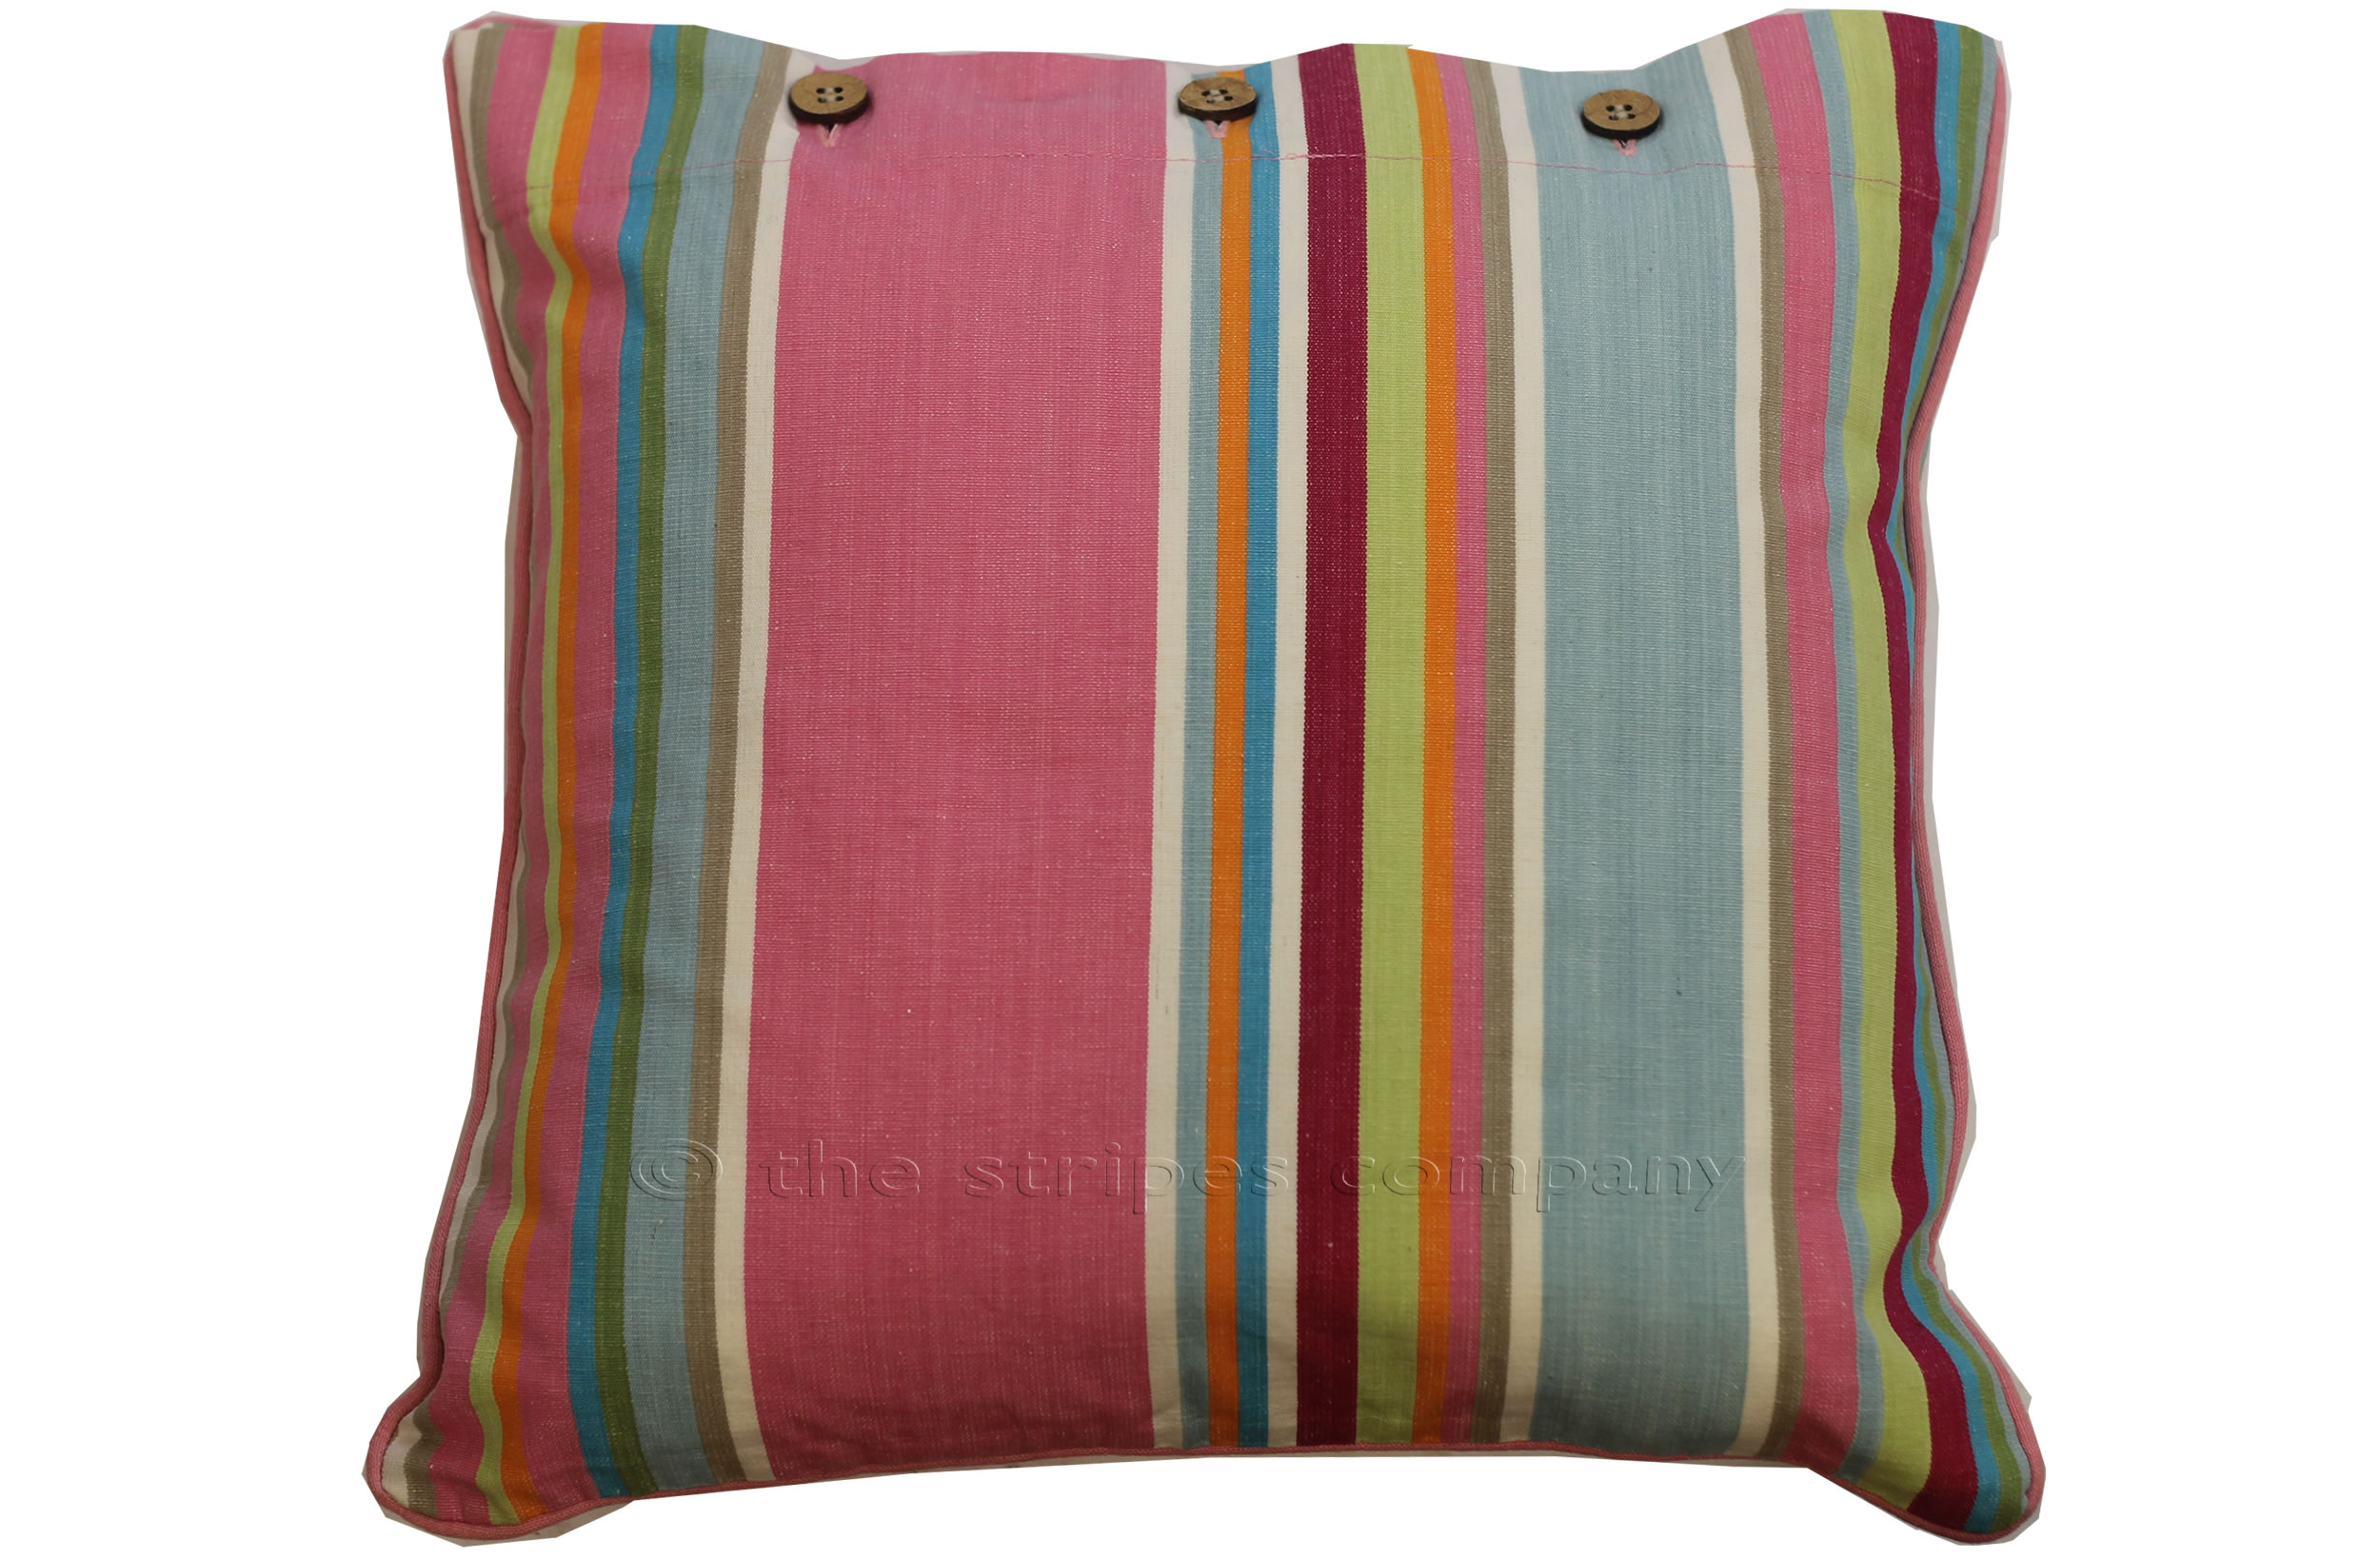 Striped Button Cushions | Piped Buttoned Cushions  Pink, Grey, Blue Stripes